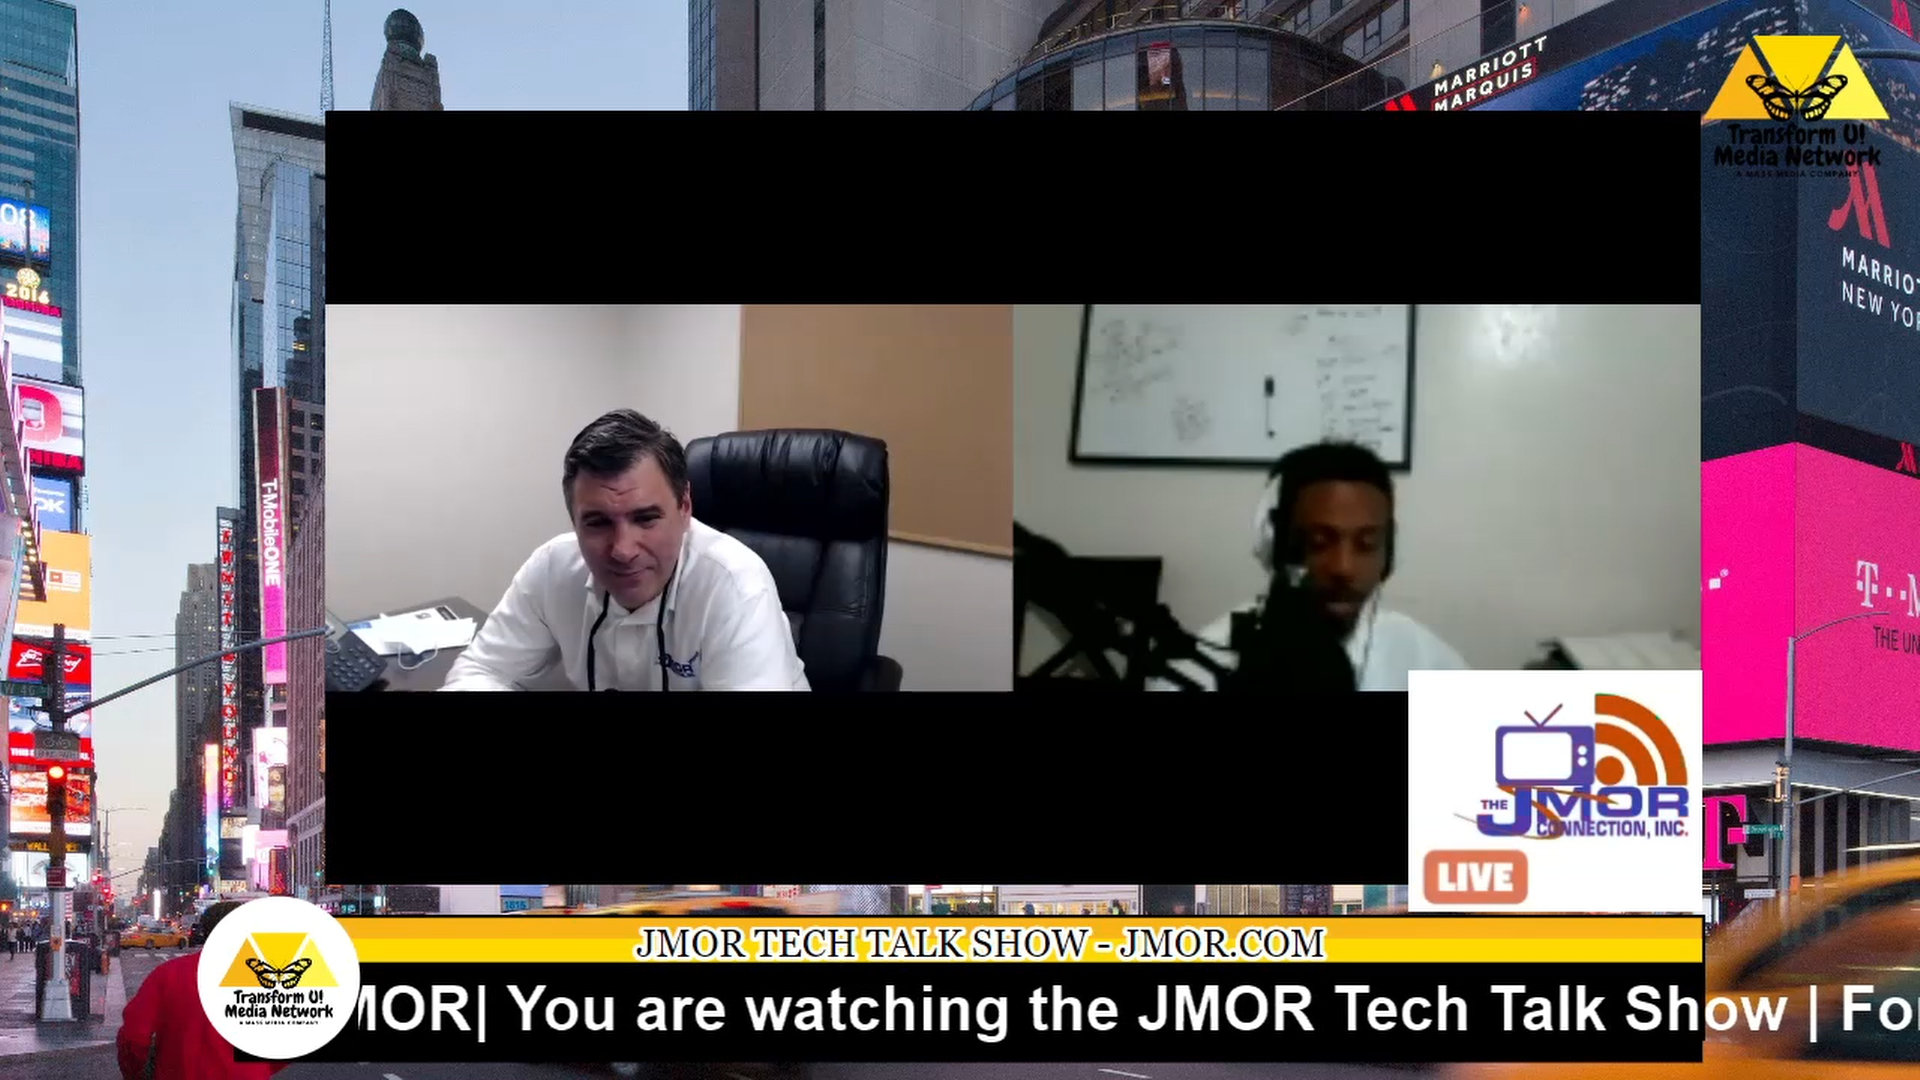 JMOR Tech Talk Show 2020E11:  Amazon and Drone Deliverys, Schools Reopening, Tesla Self Driving Cars and More...